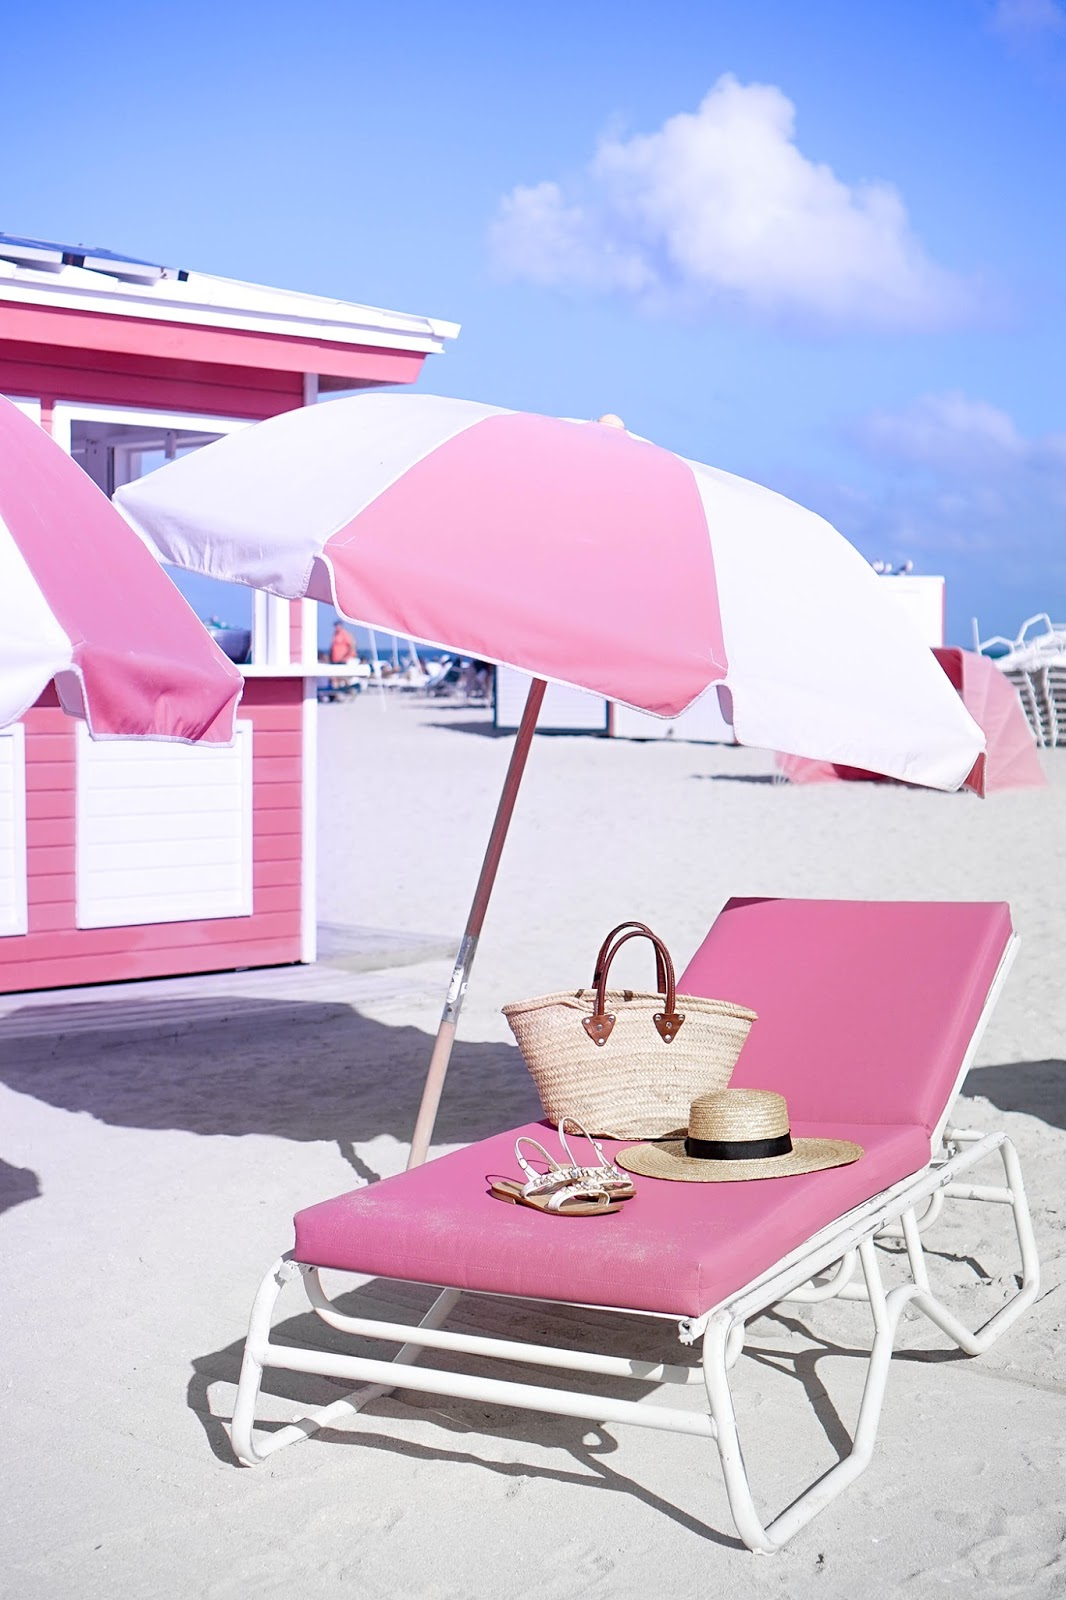 pink beach chair hanging pier one canada bum what s better than spending a day relaxing on the in miami lounge with striped umbrellas